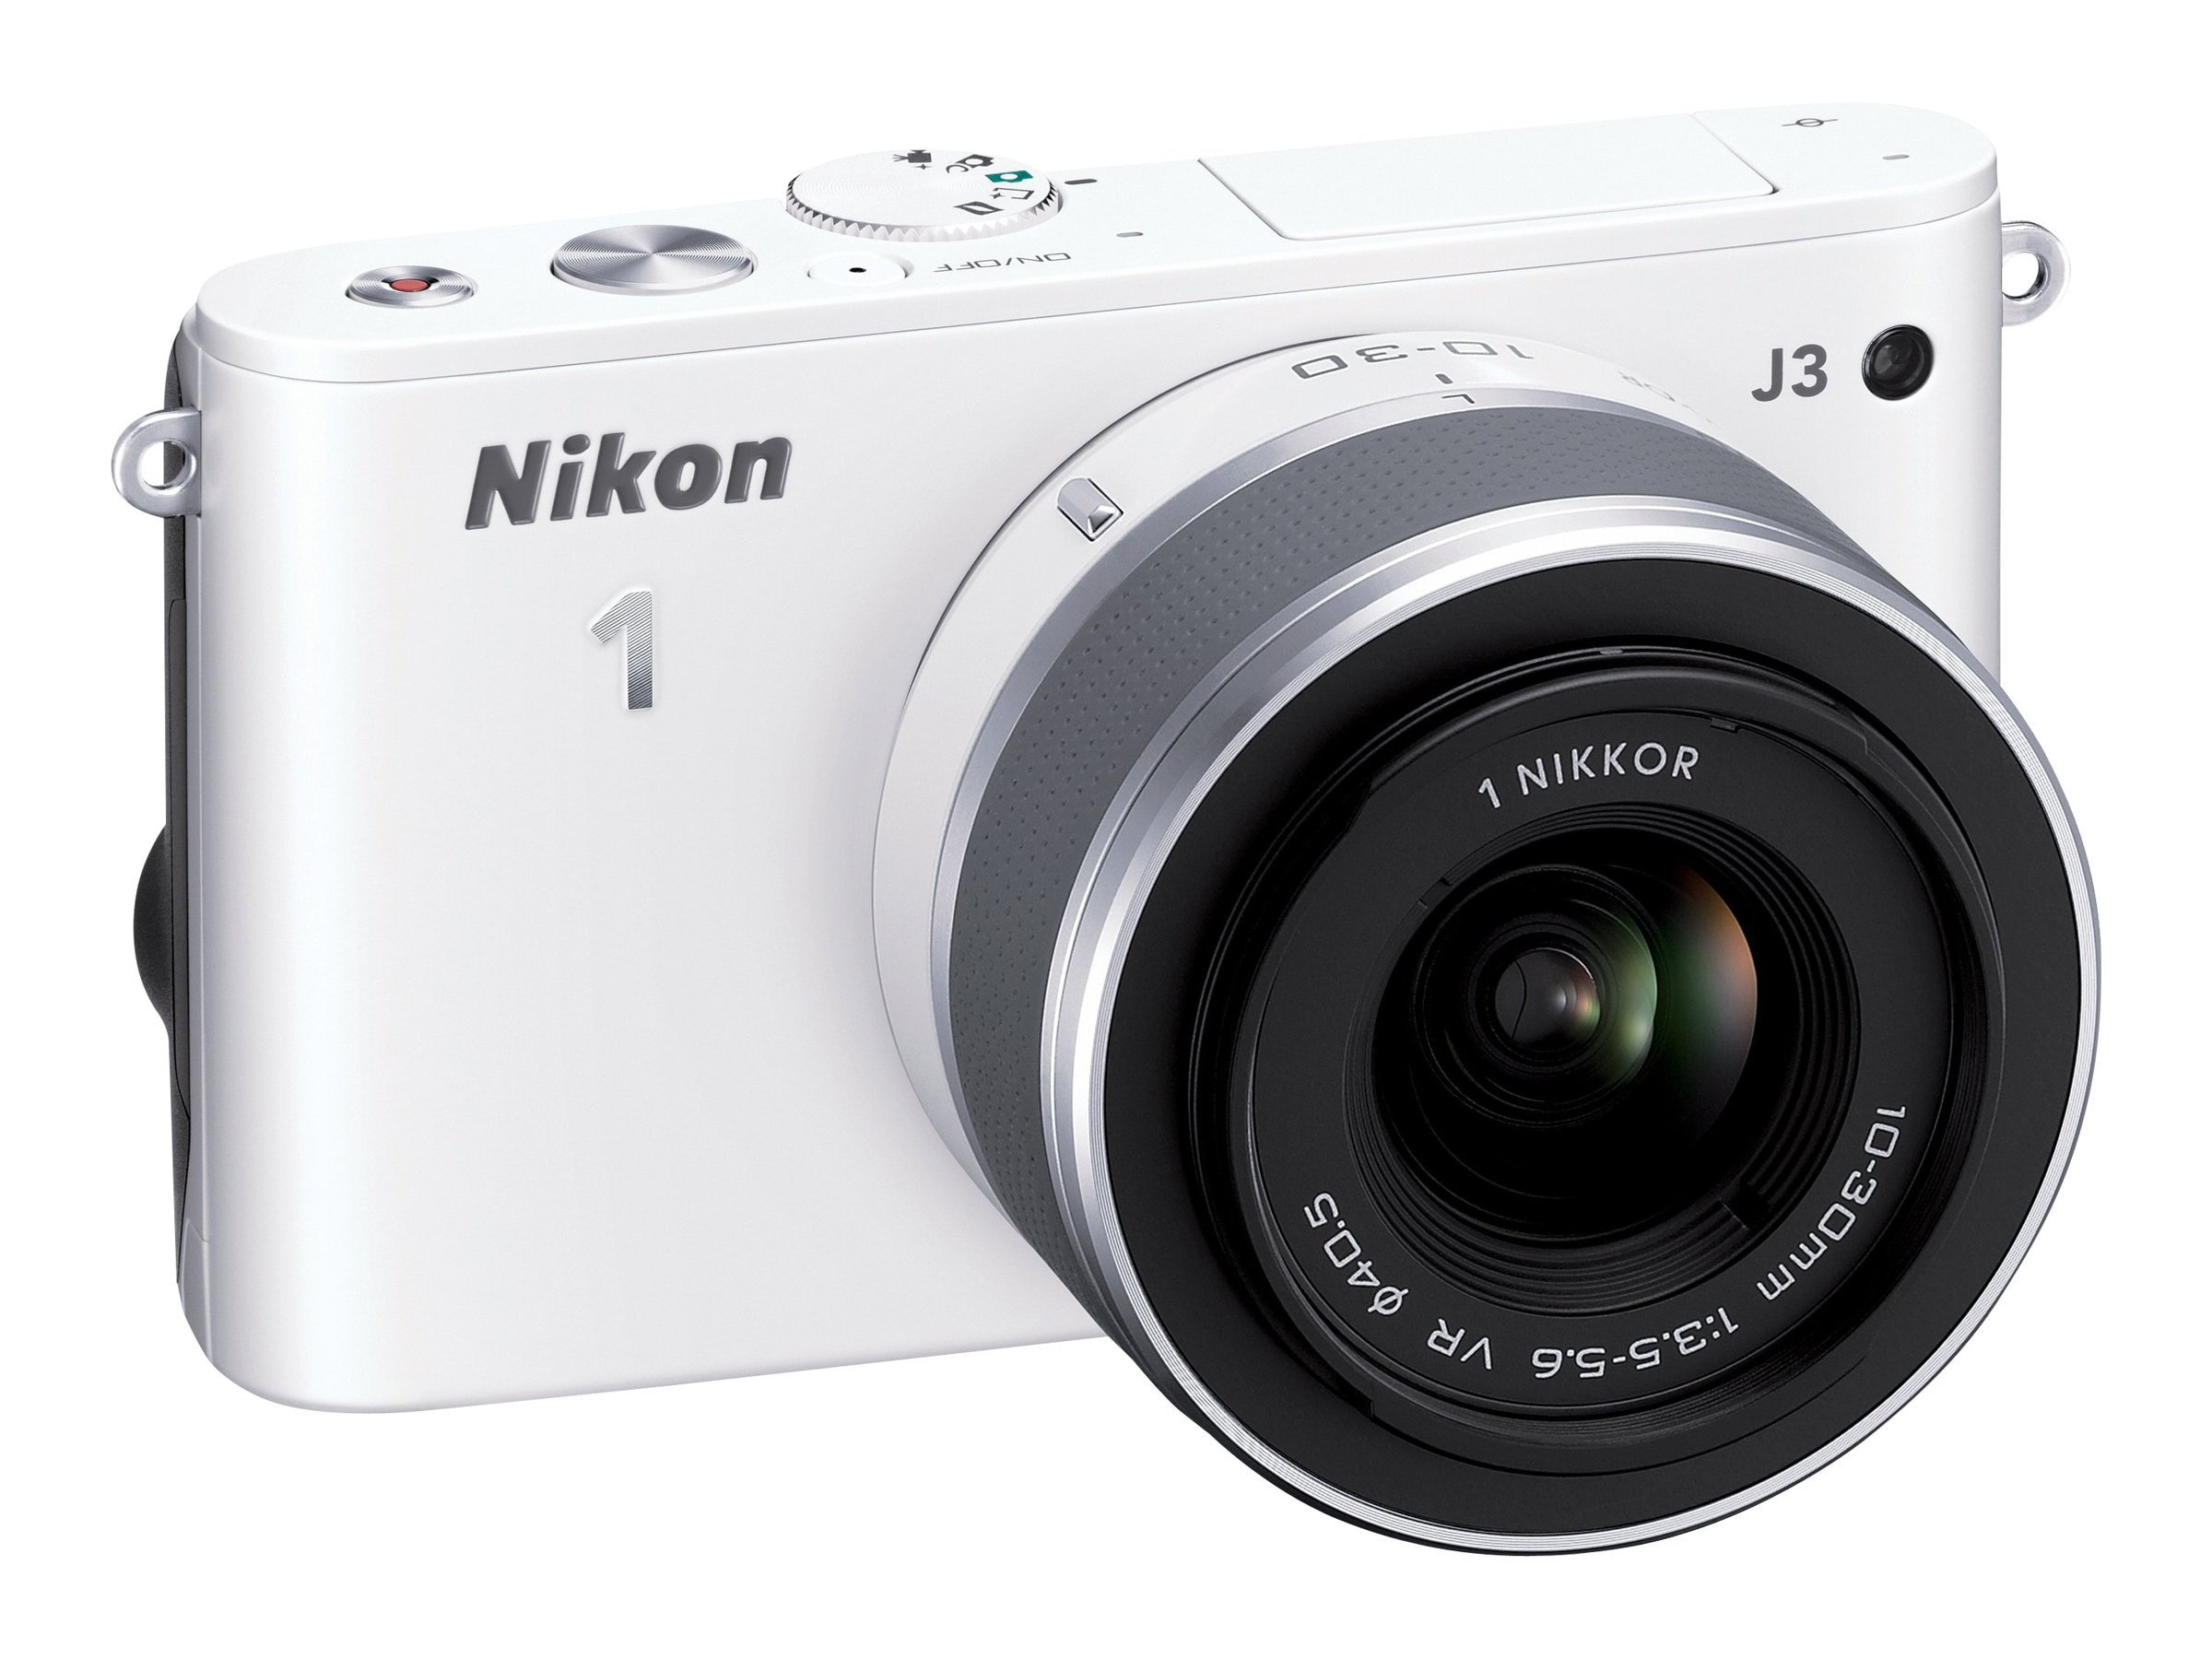 Nikon J3 Interchangable Lens Digital Camera, 14.2MP, White with 10-30mm Lens, 27638, 15256404, Cameras - Digital - SLR